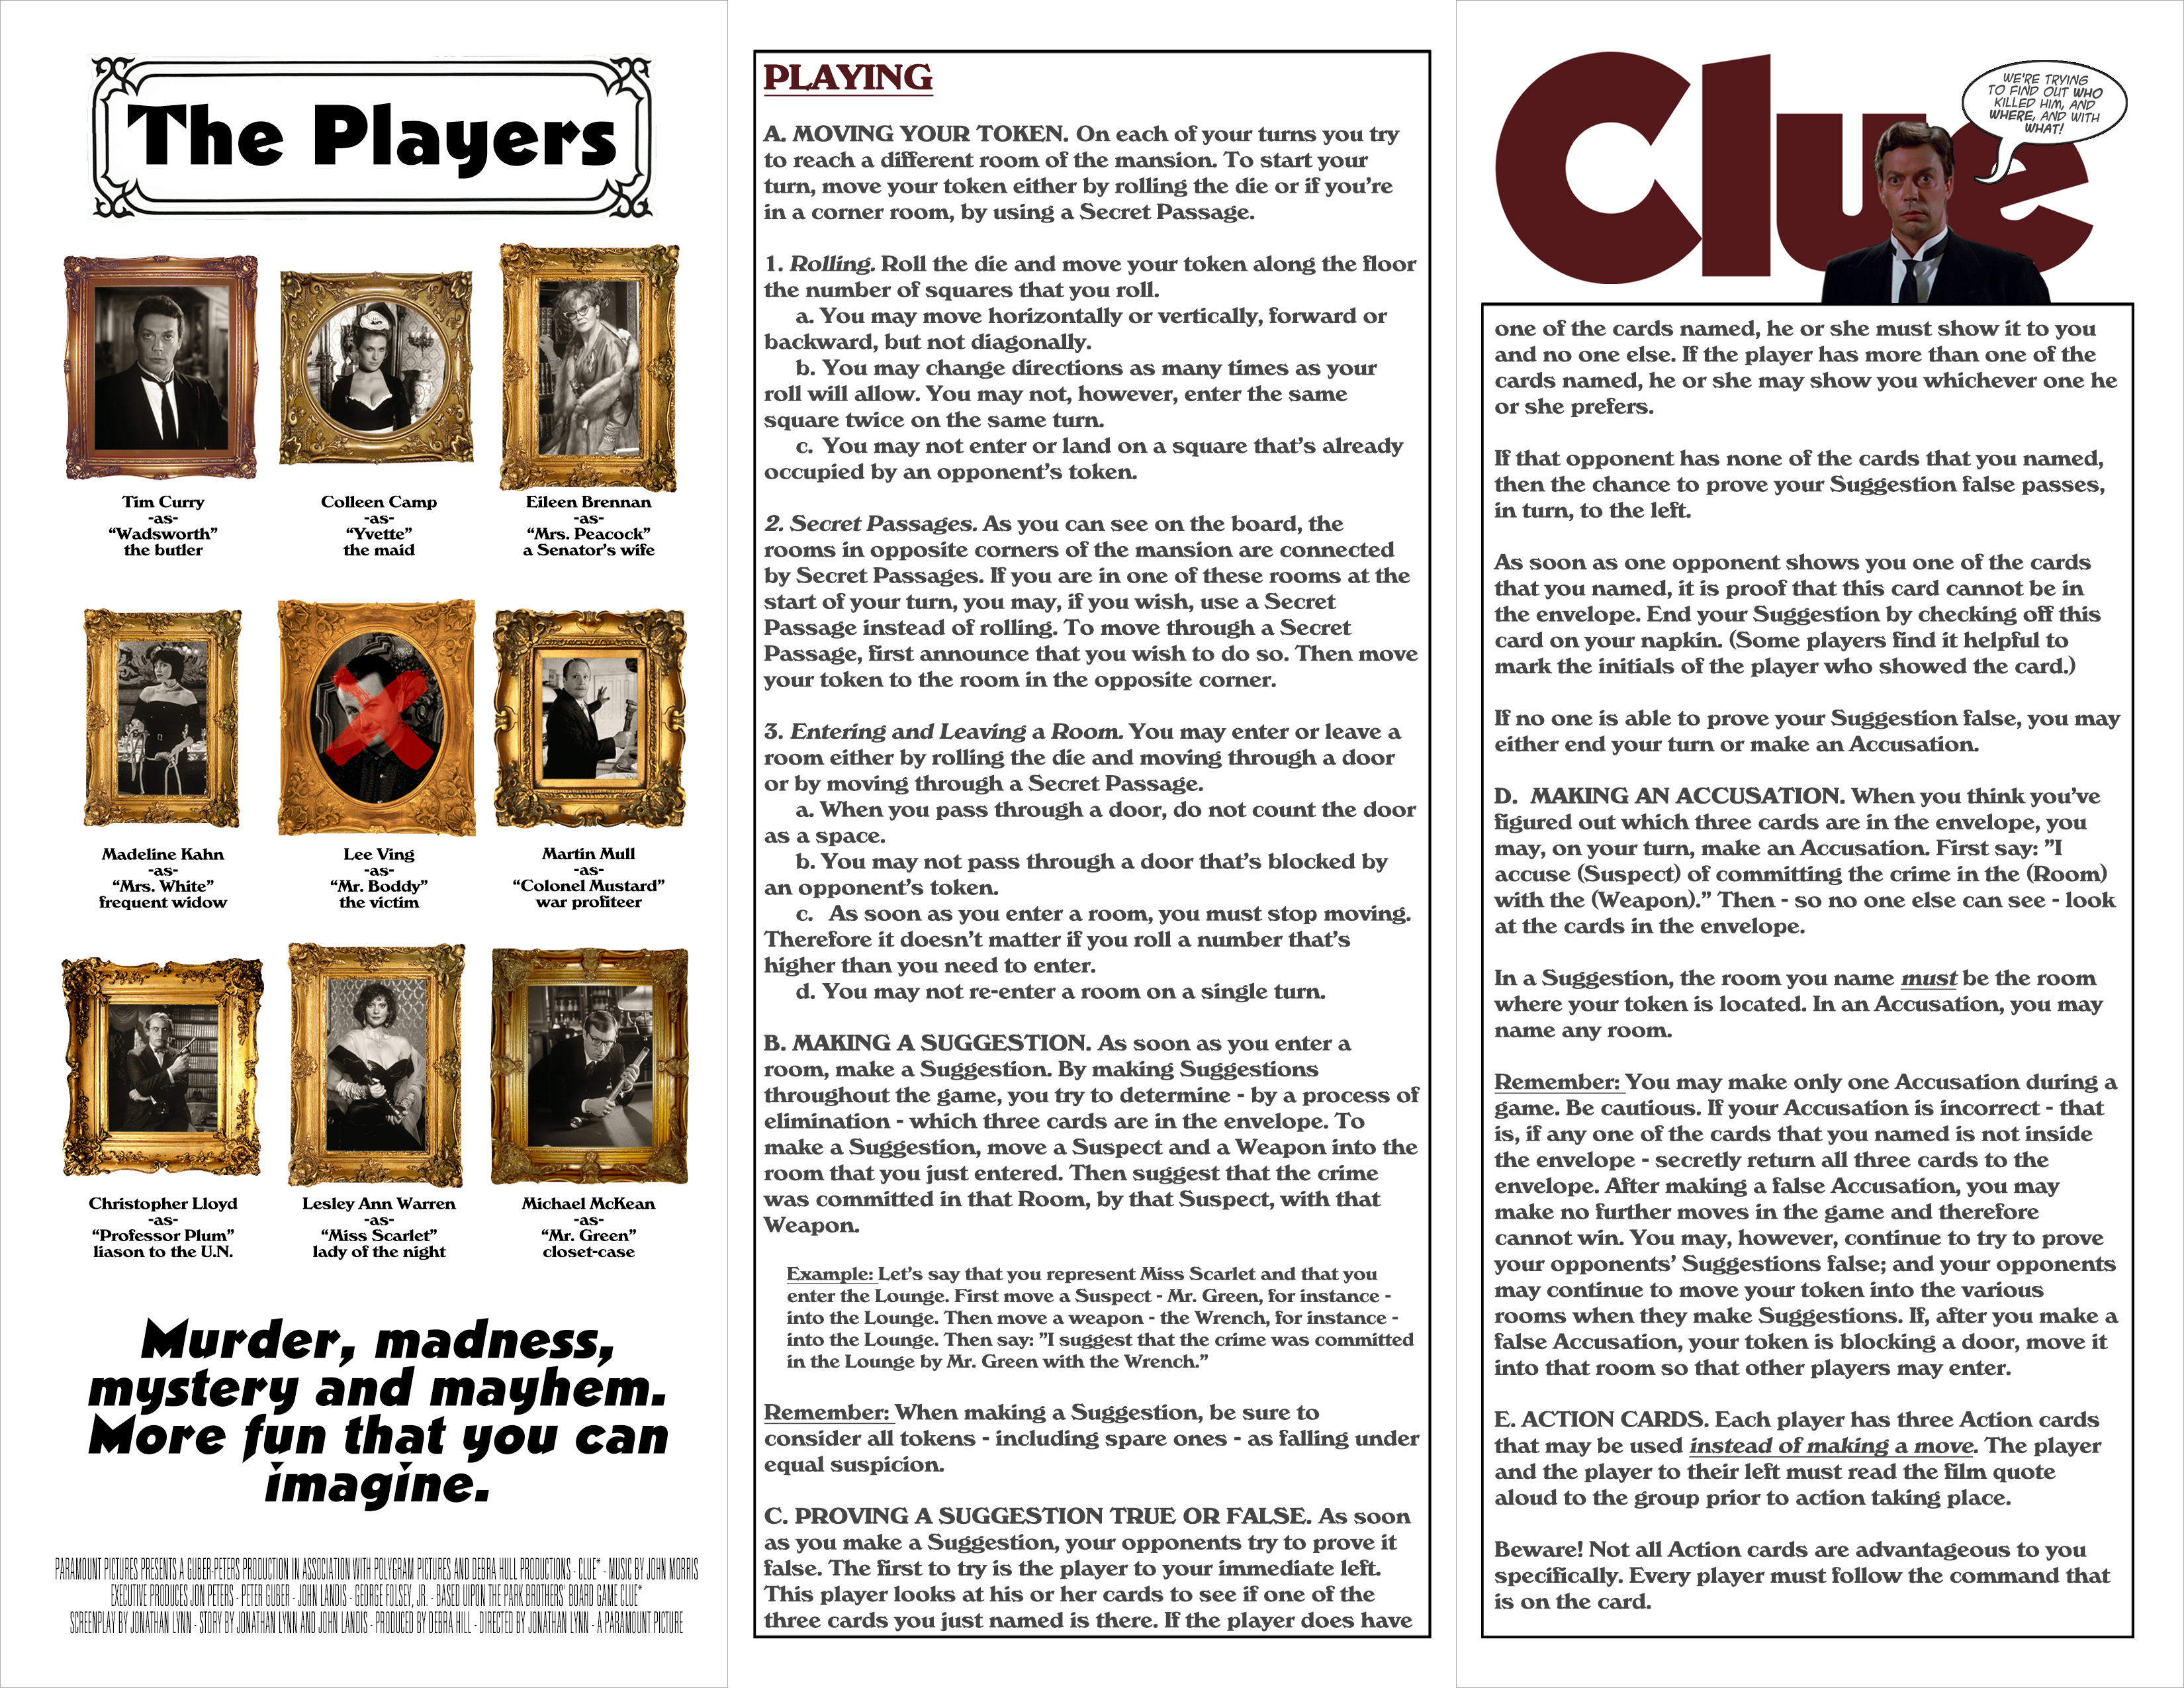 Letter-Sized-Trifold-for-Clue-Rules-SIDE-2xx.jpg